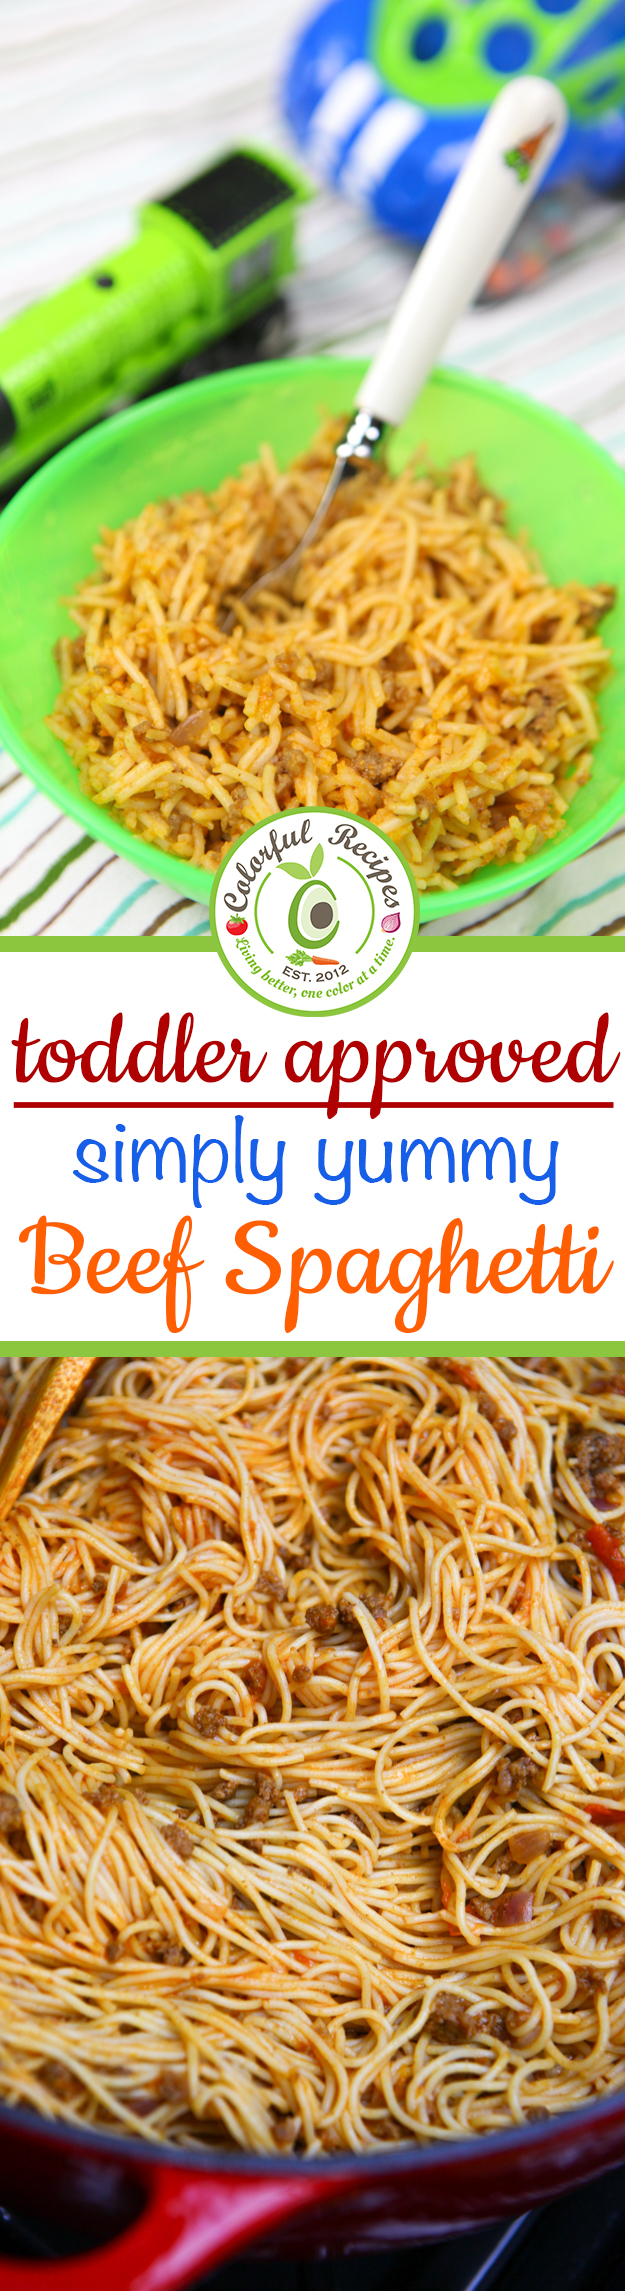 Toddler Approved Simple Beef Spaghetti